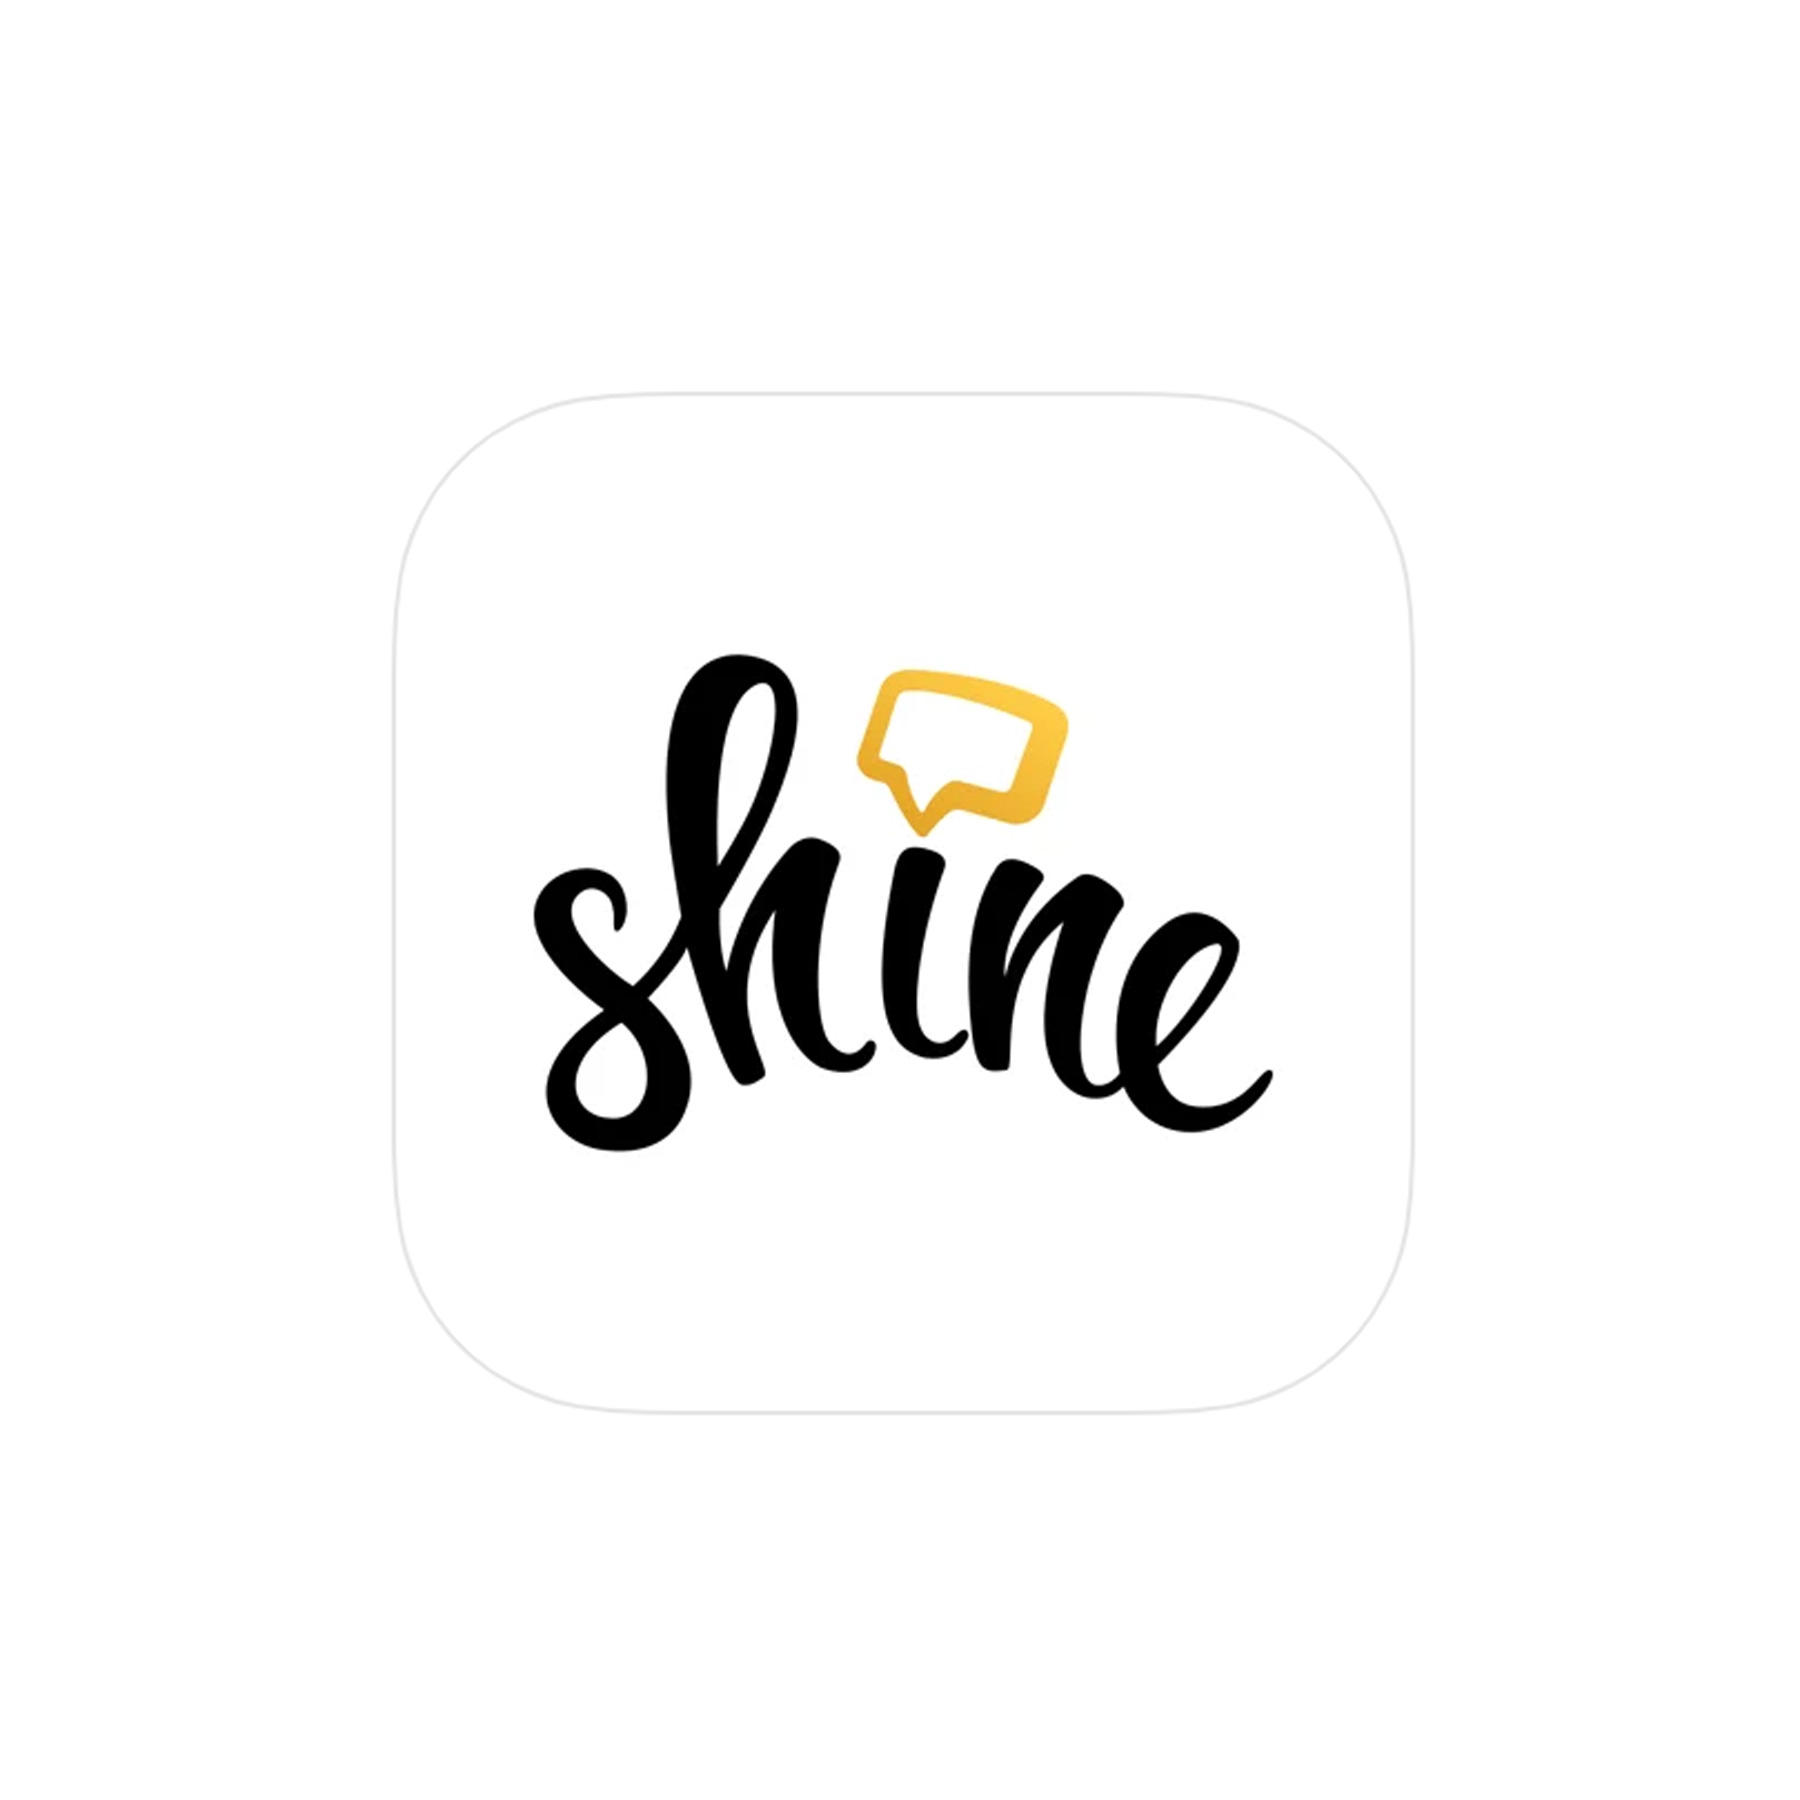 Best Meditation Apps 2020: Shine Meditation